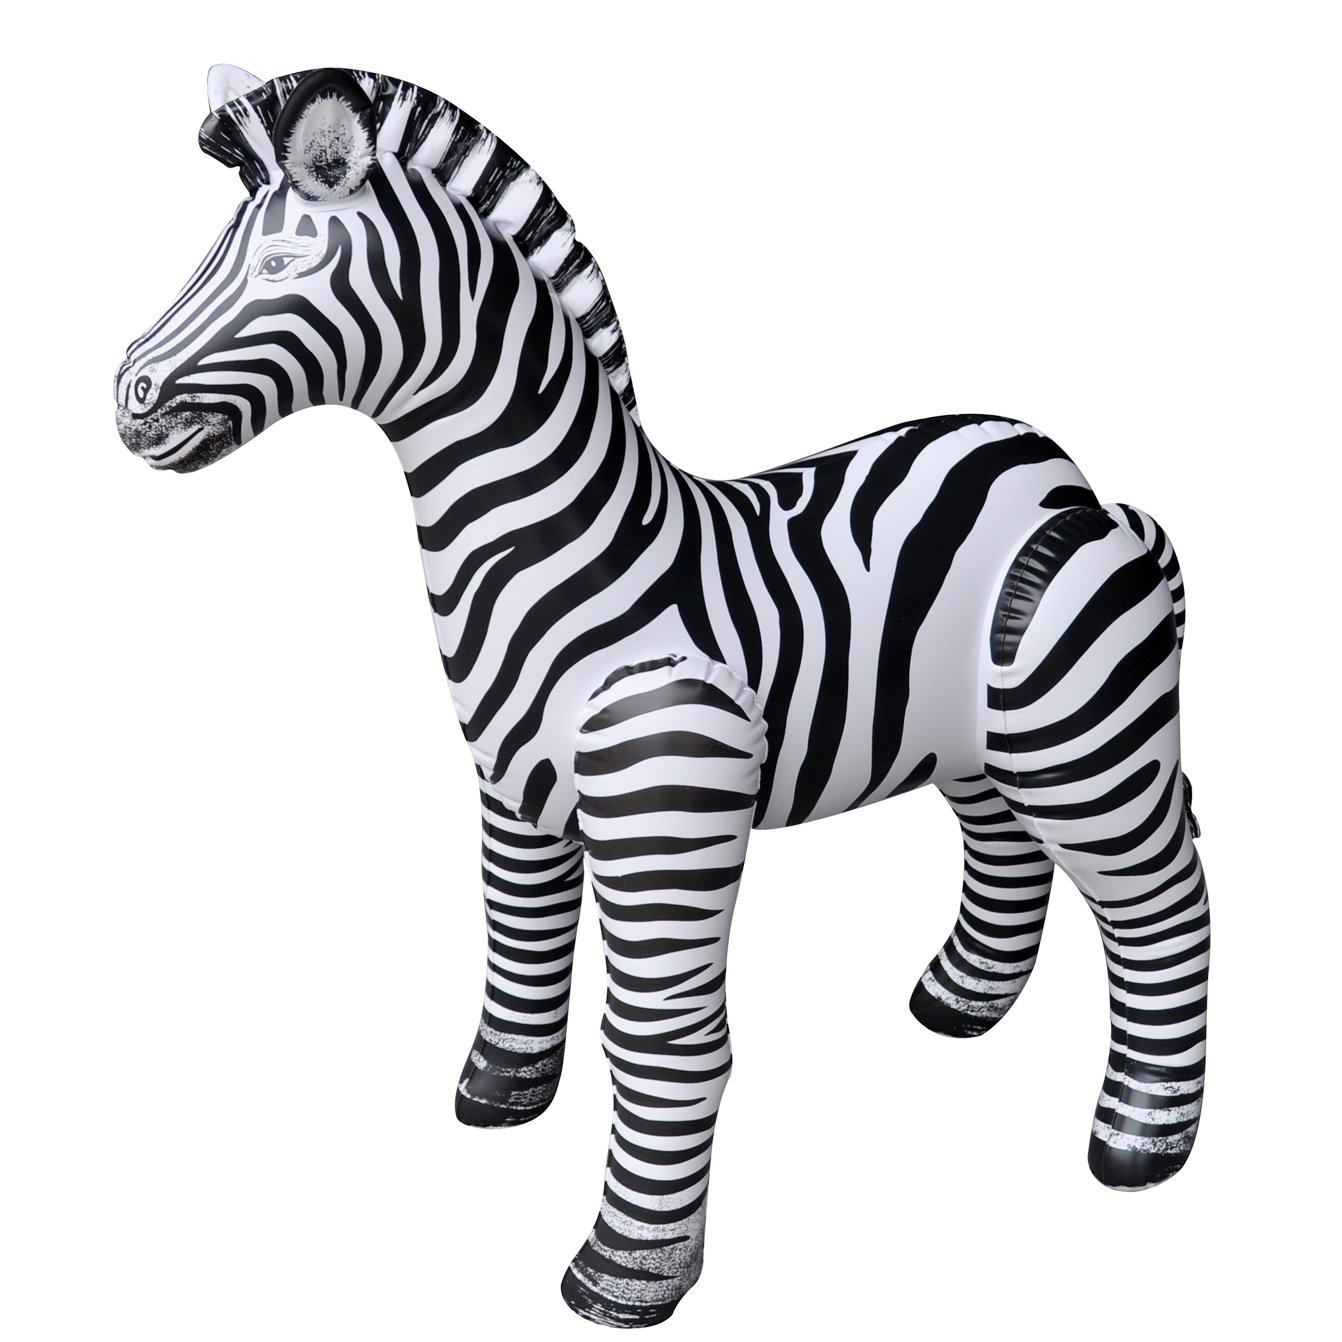 Jet Creations Inflatable Zebra, 32 inch